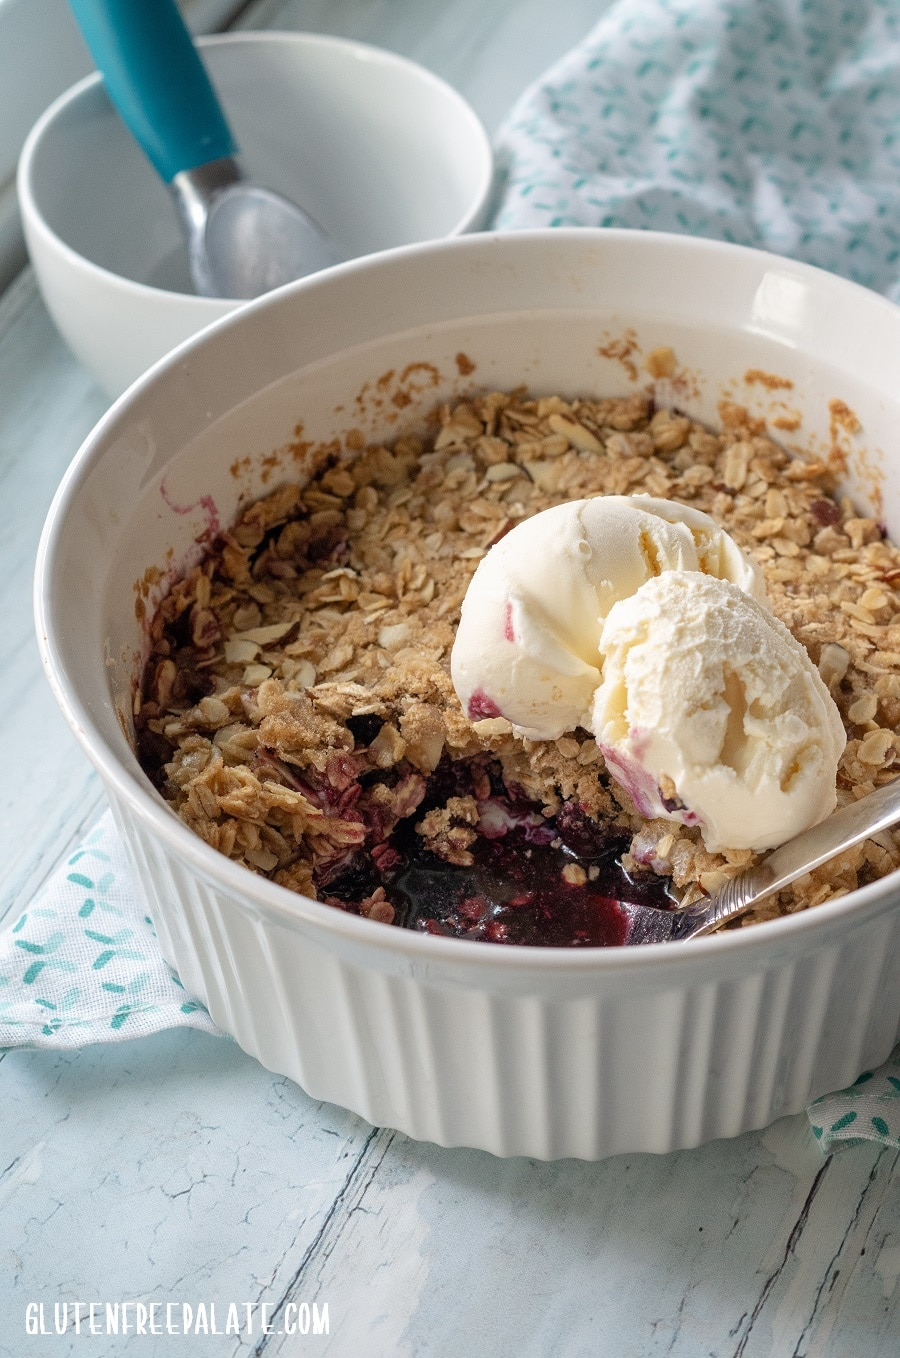 Gluten Free Blackberry crisp in a white dish with a spoon.